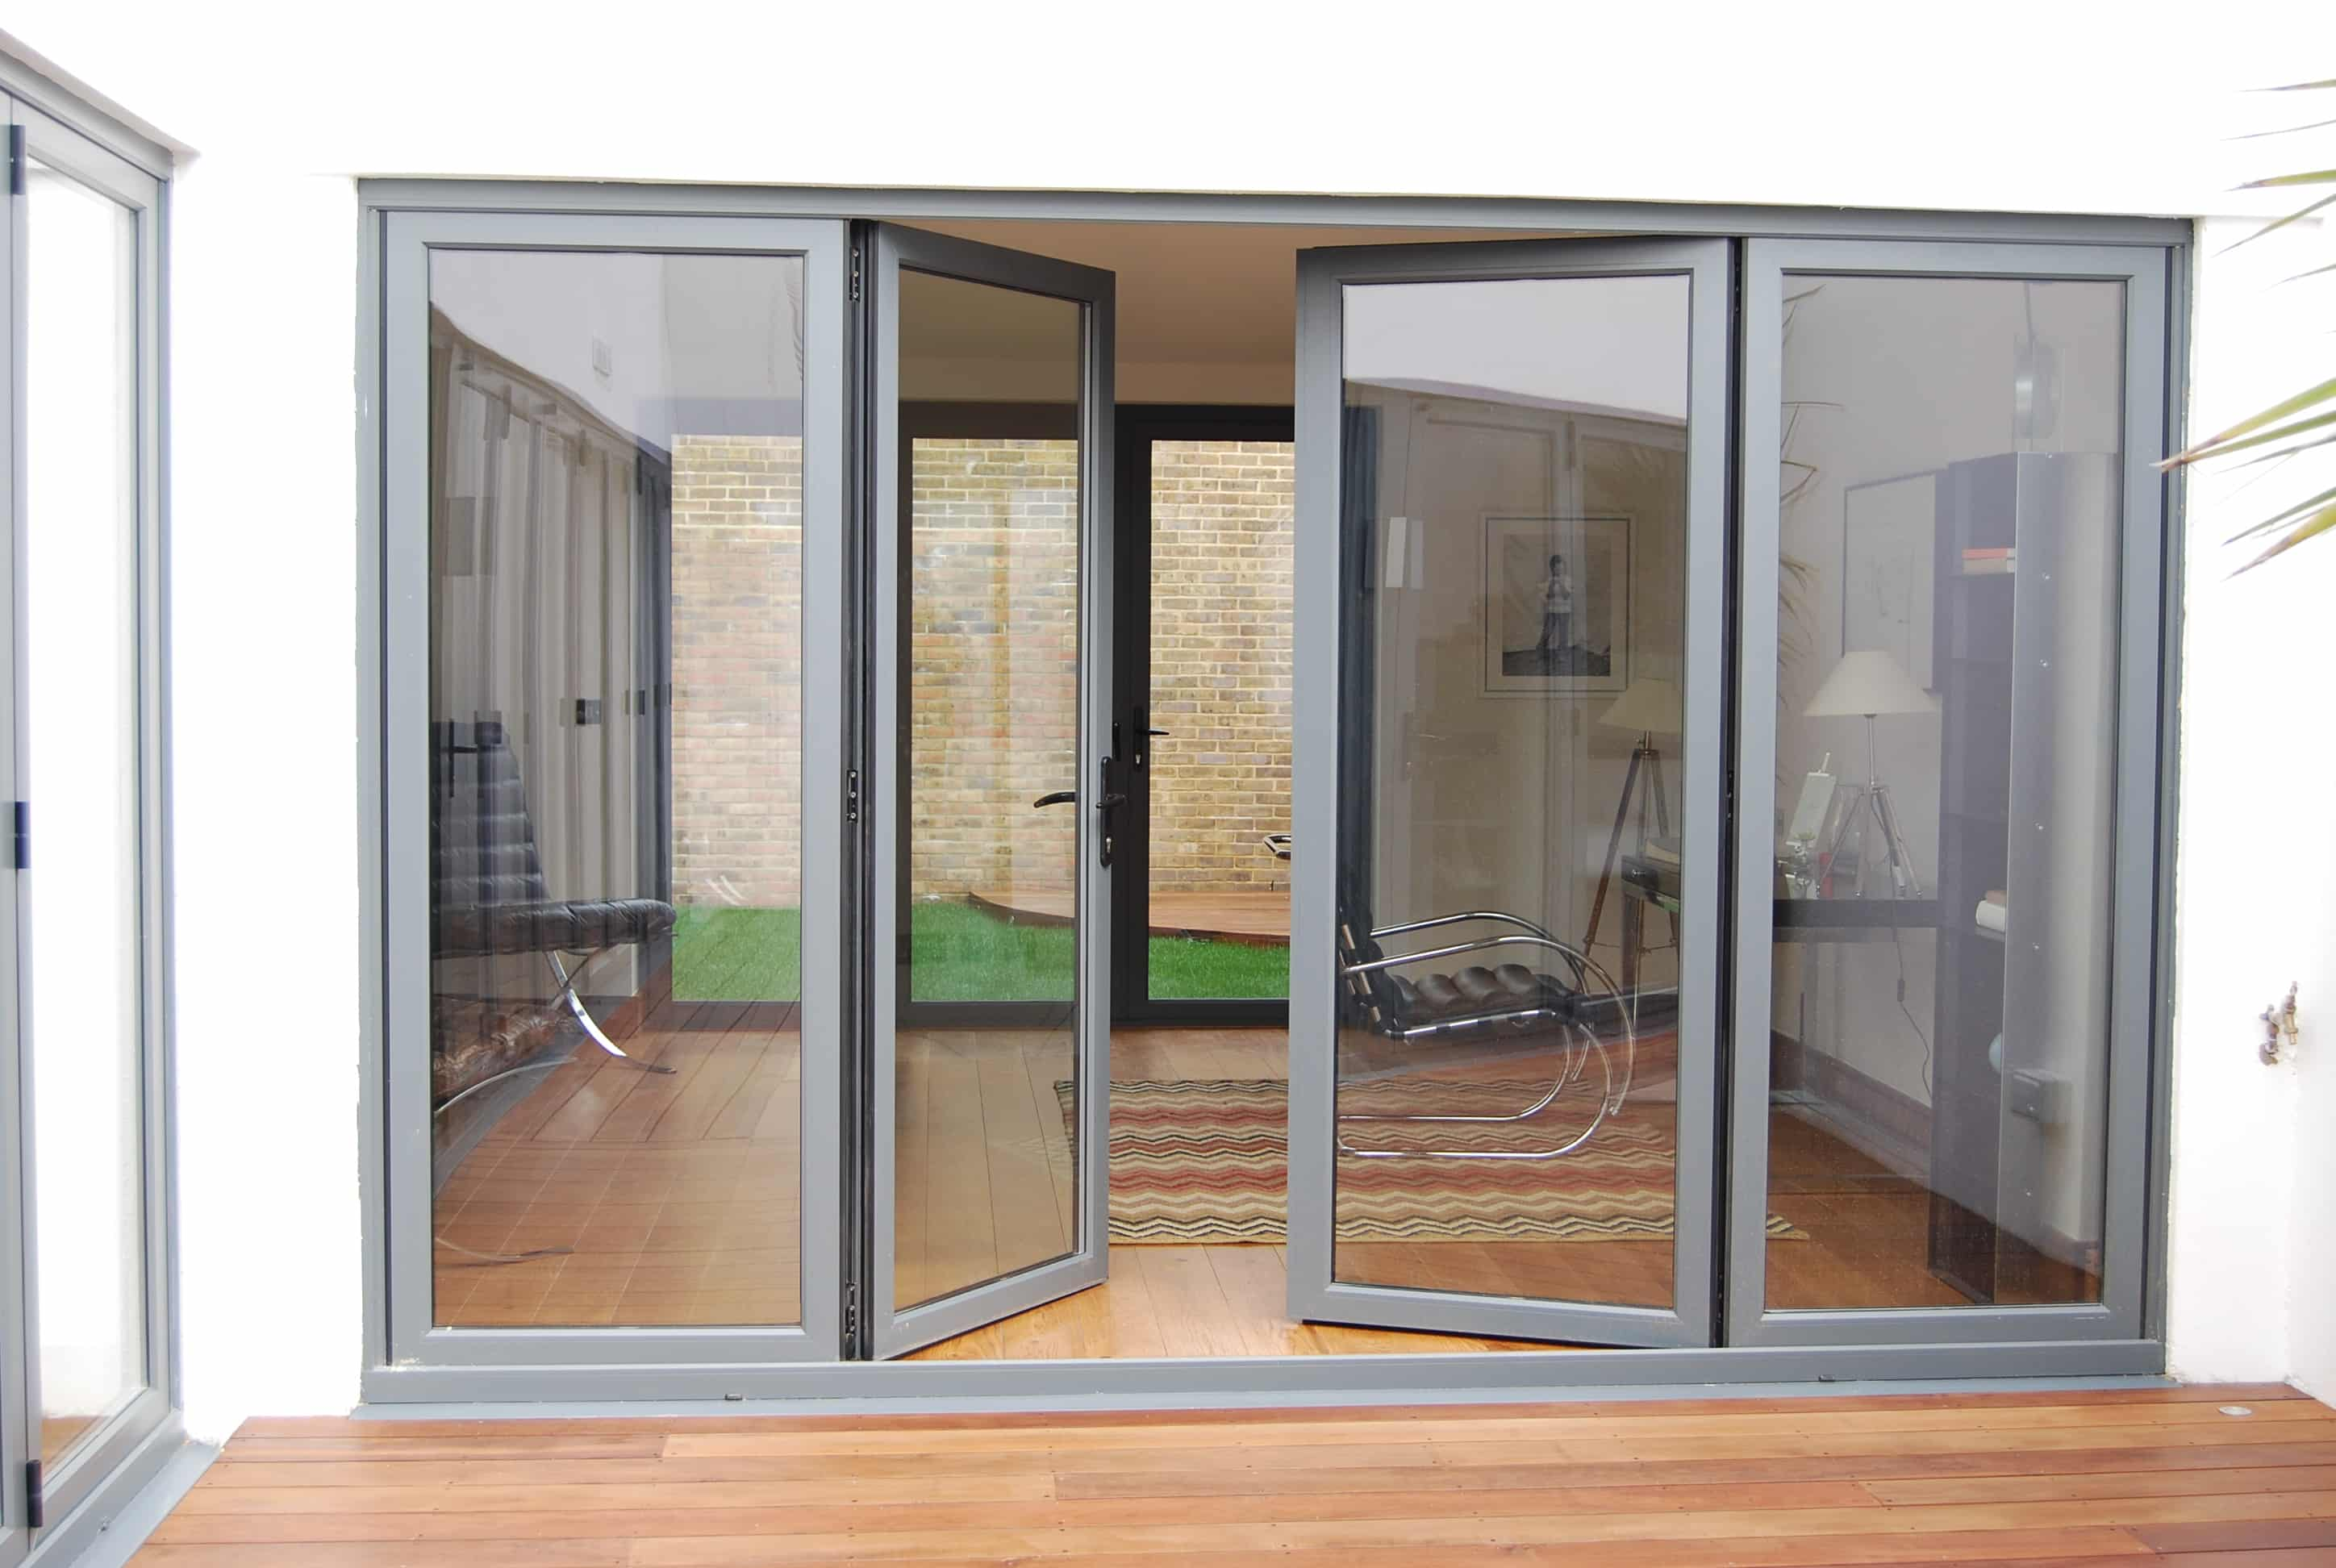 Aluminium doors sgk windows and home improvements rubansaba